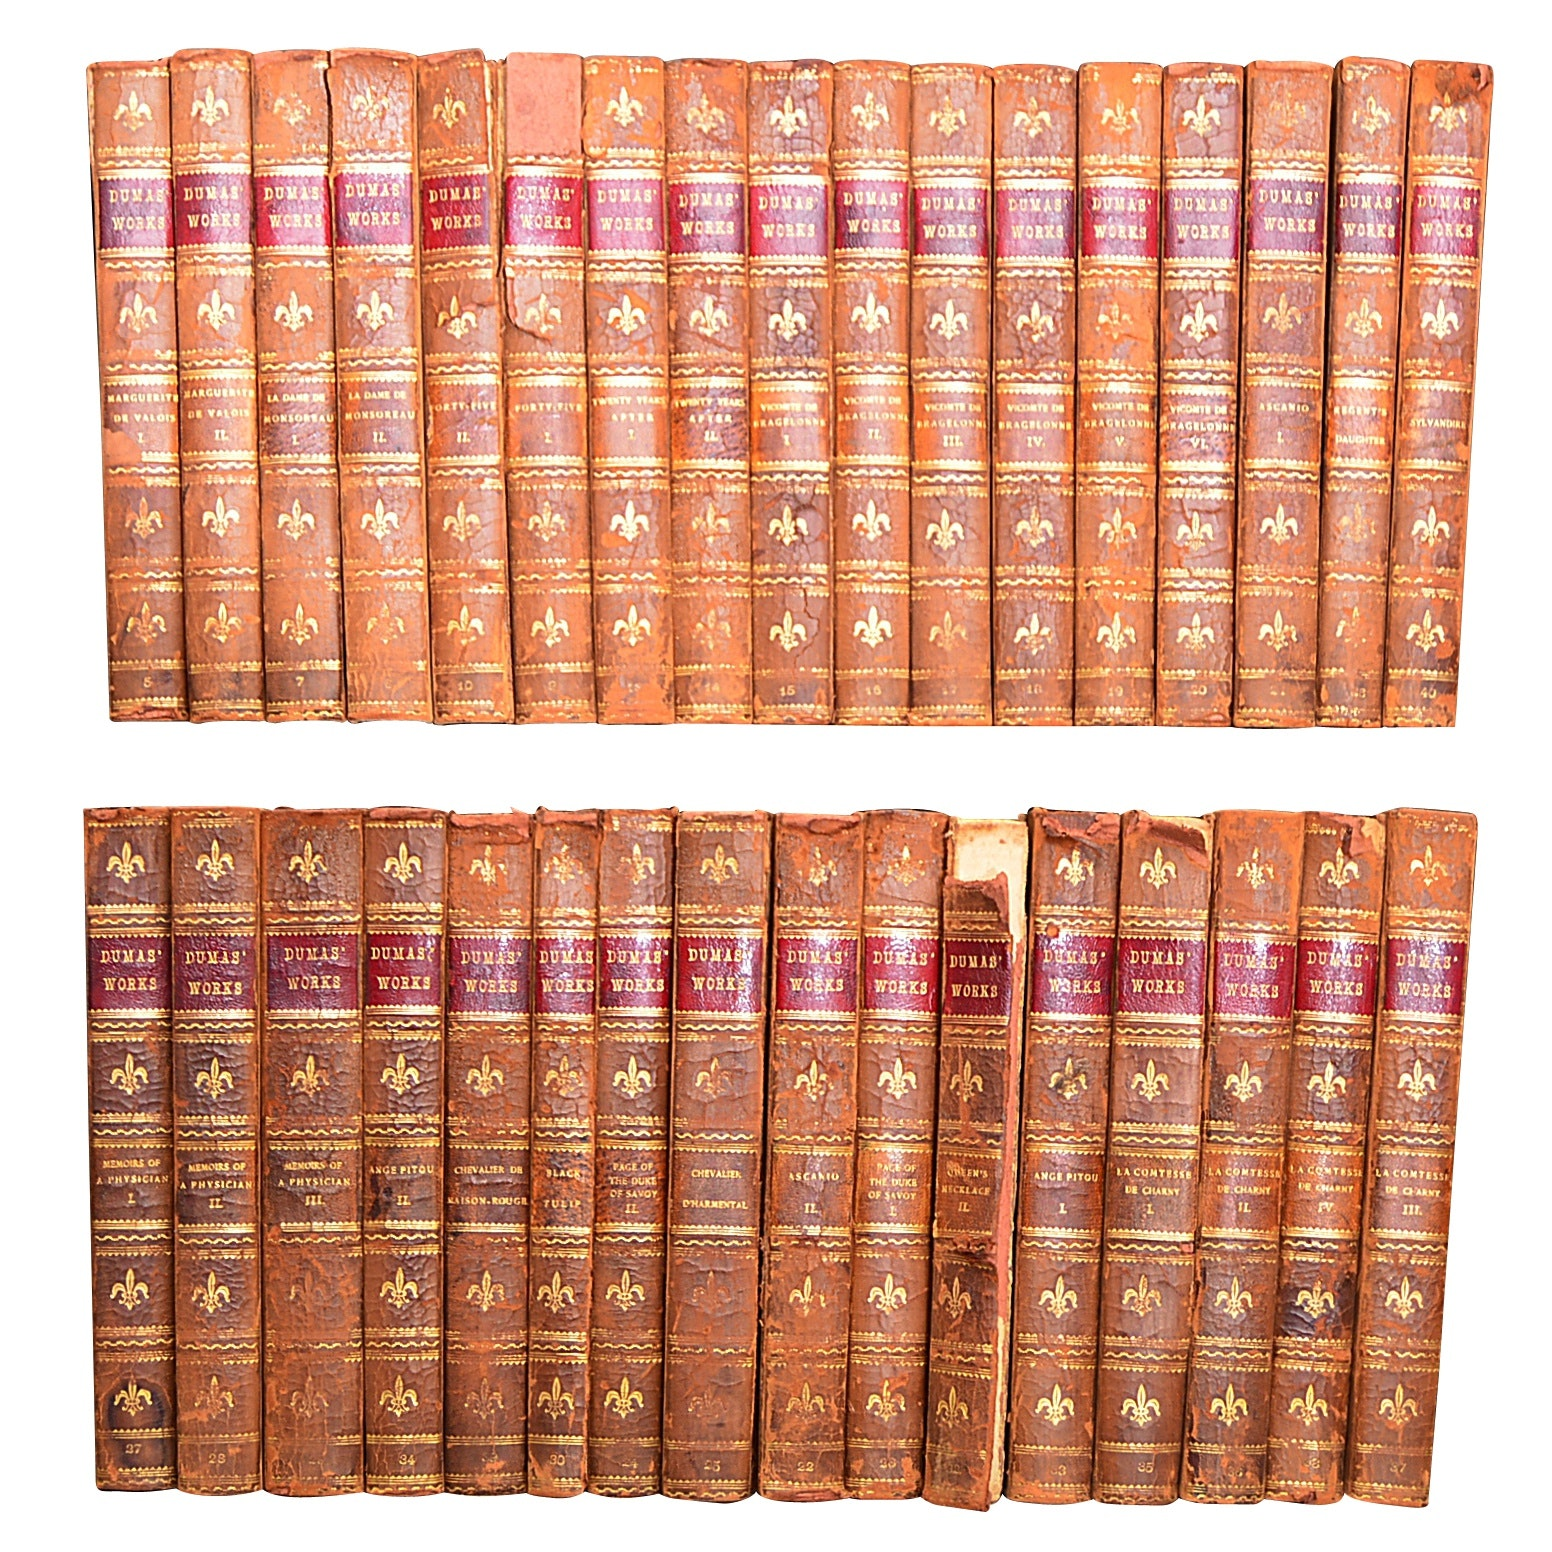 """Works"" 33-Volume Set by Alexandre Dumas, circa 1895"